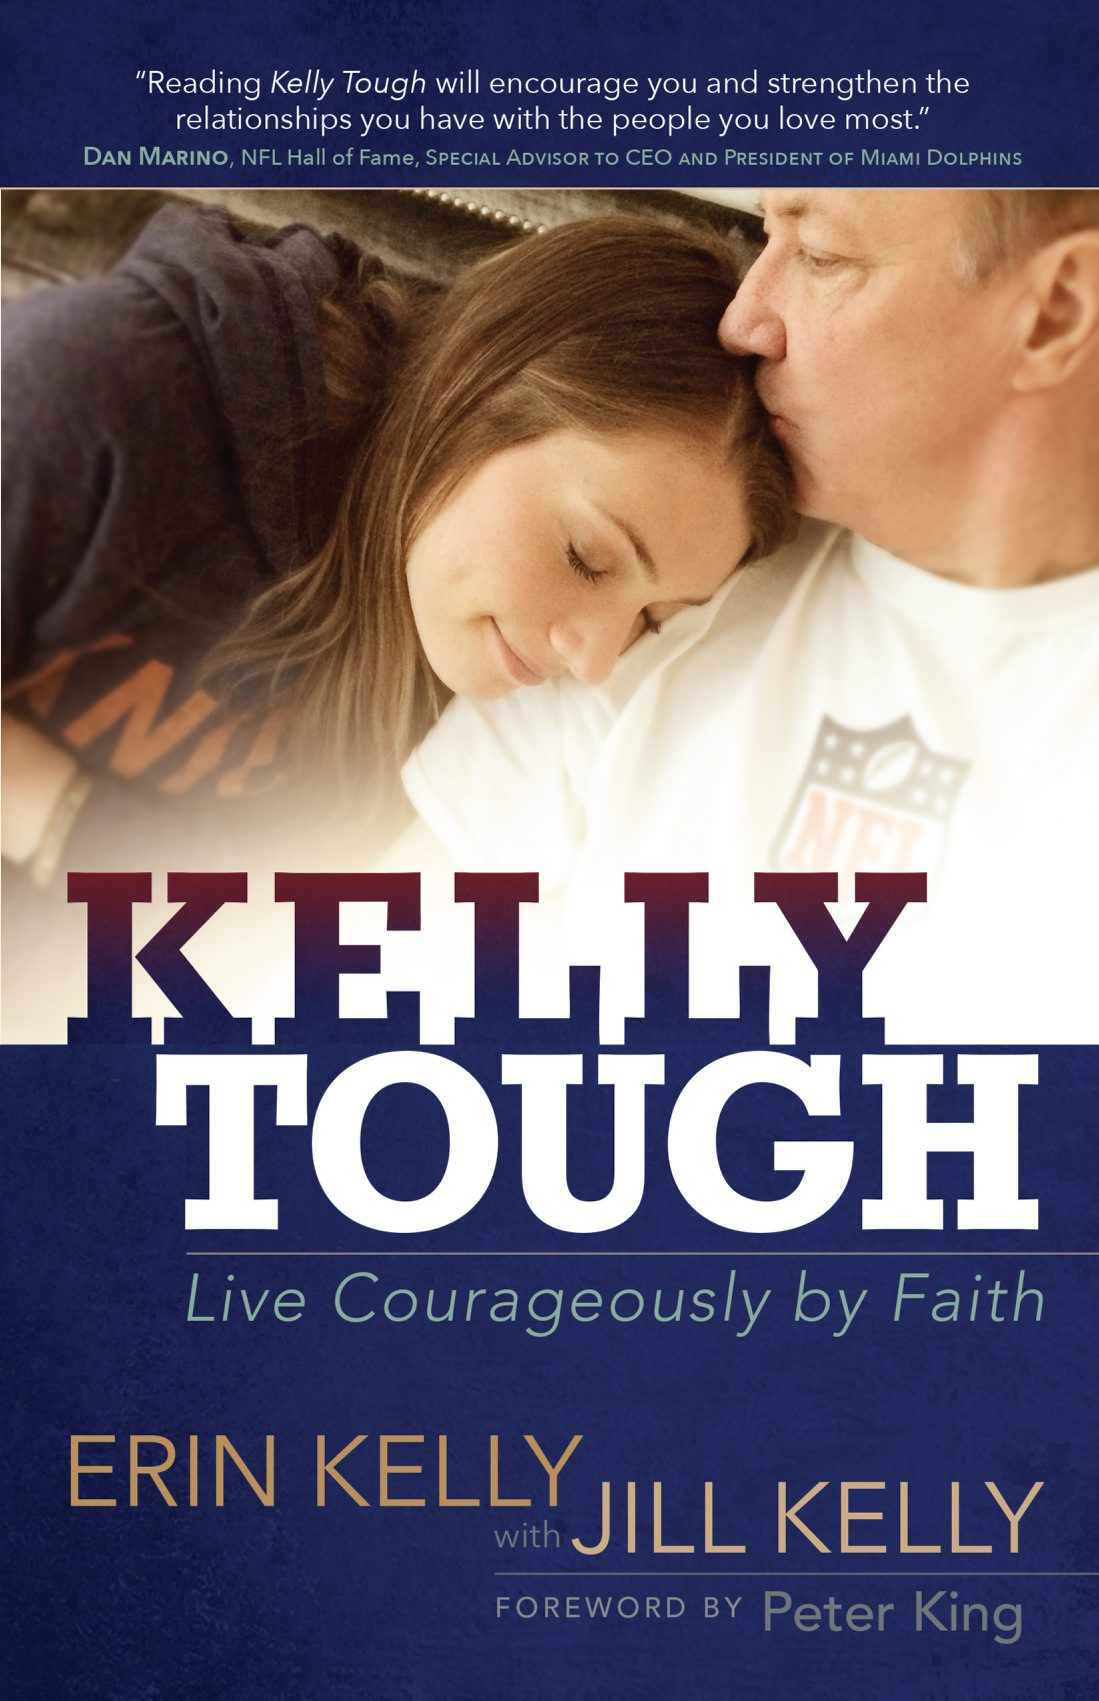 Erin Kelly found tears brought her strength.